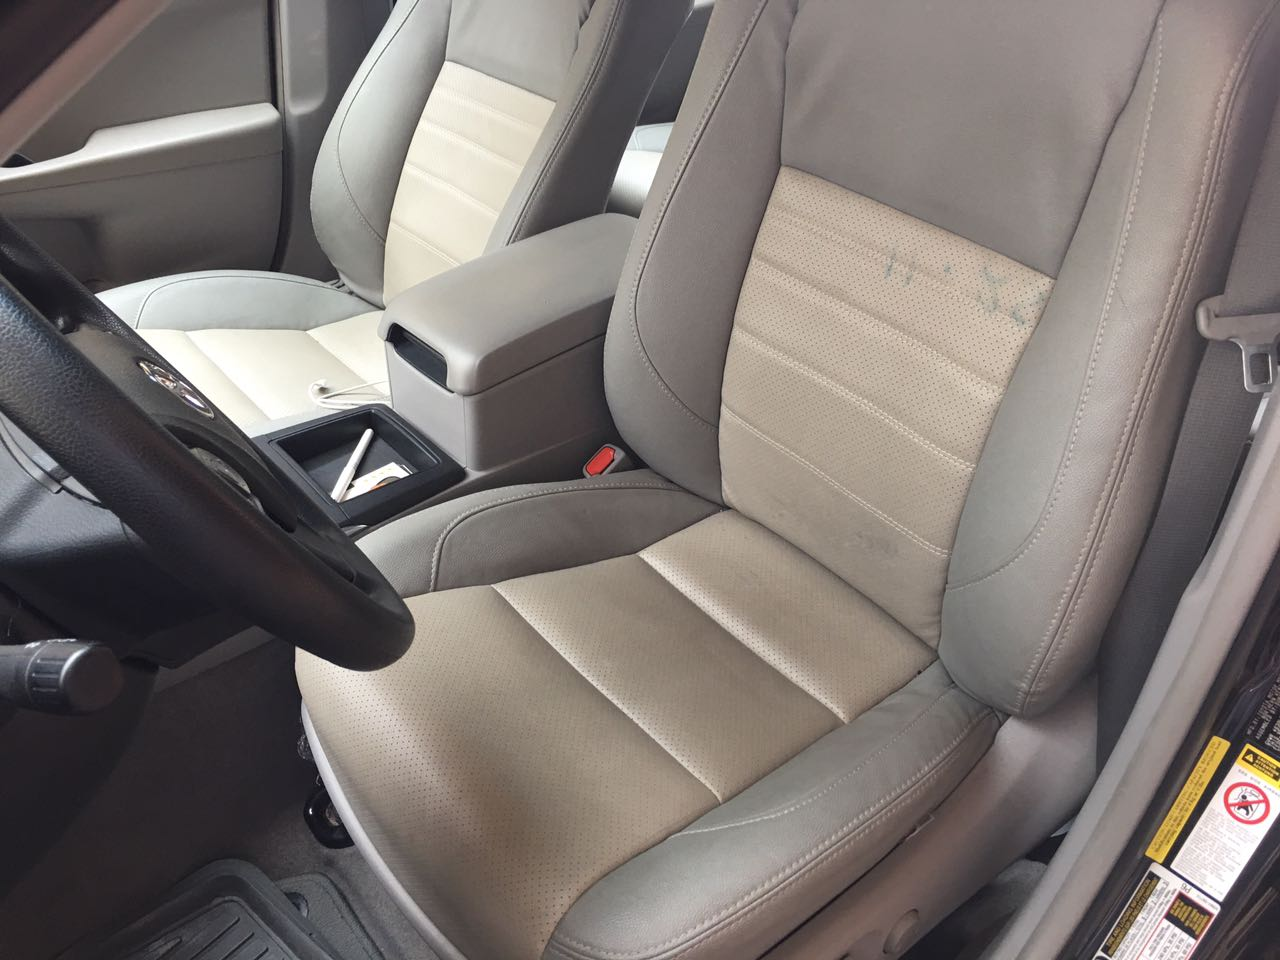 brand new toyota camry price in nigeria yaris trd philippines bought 5months reg 2015 le